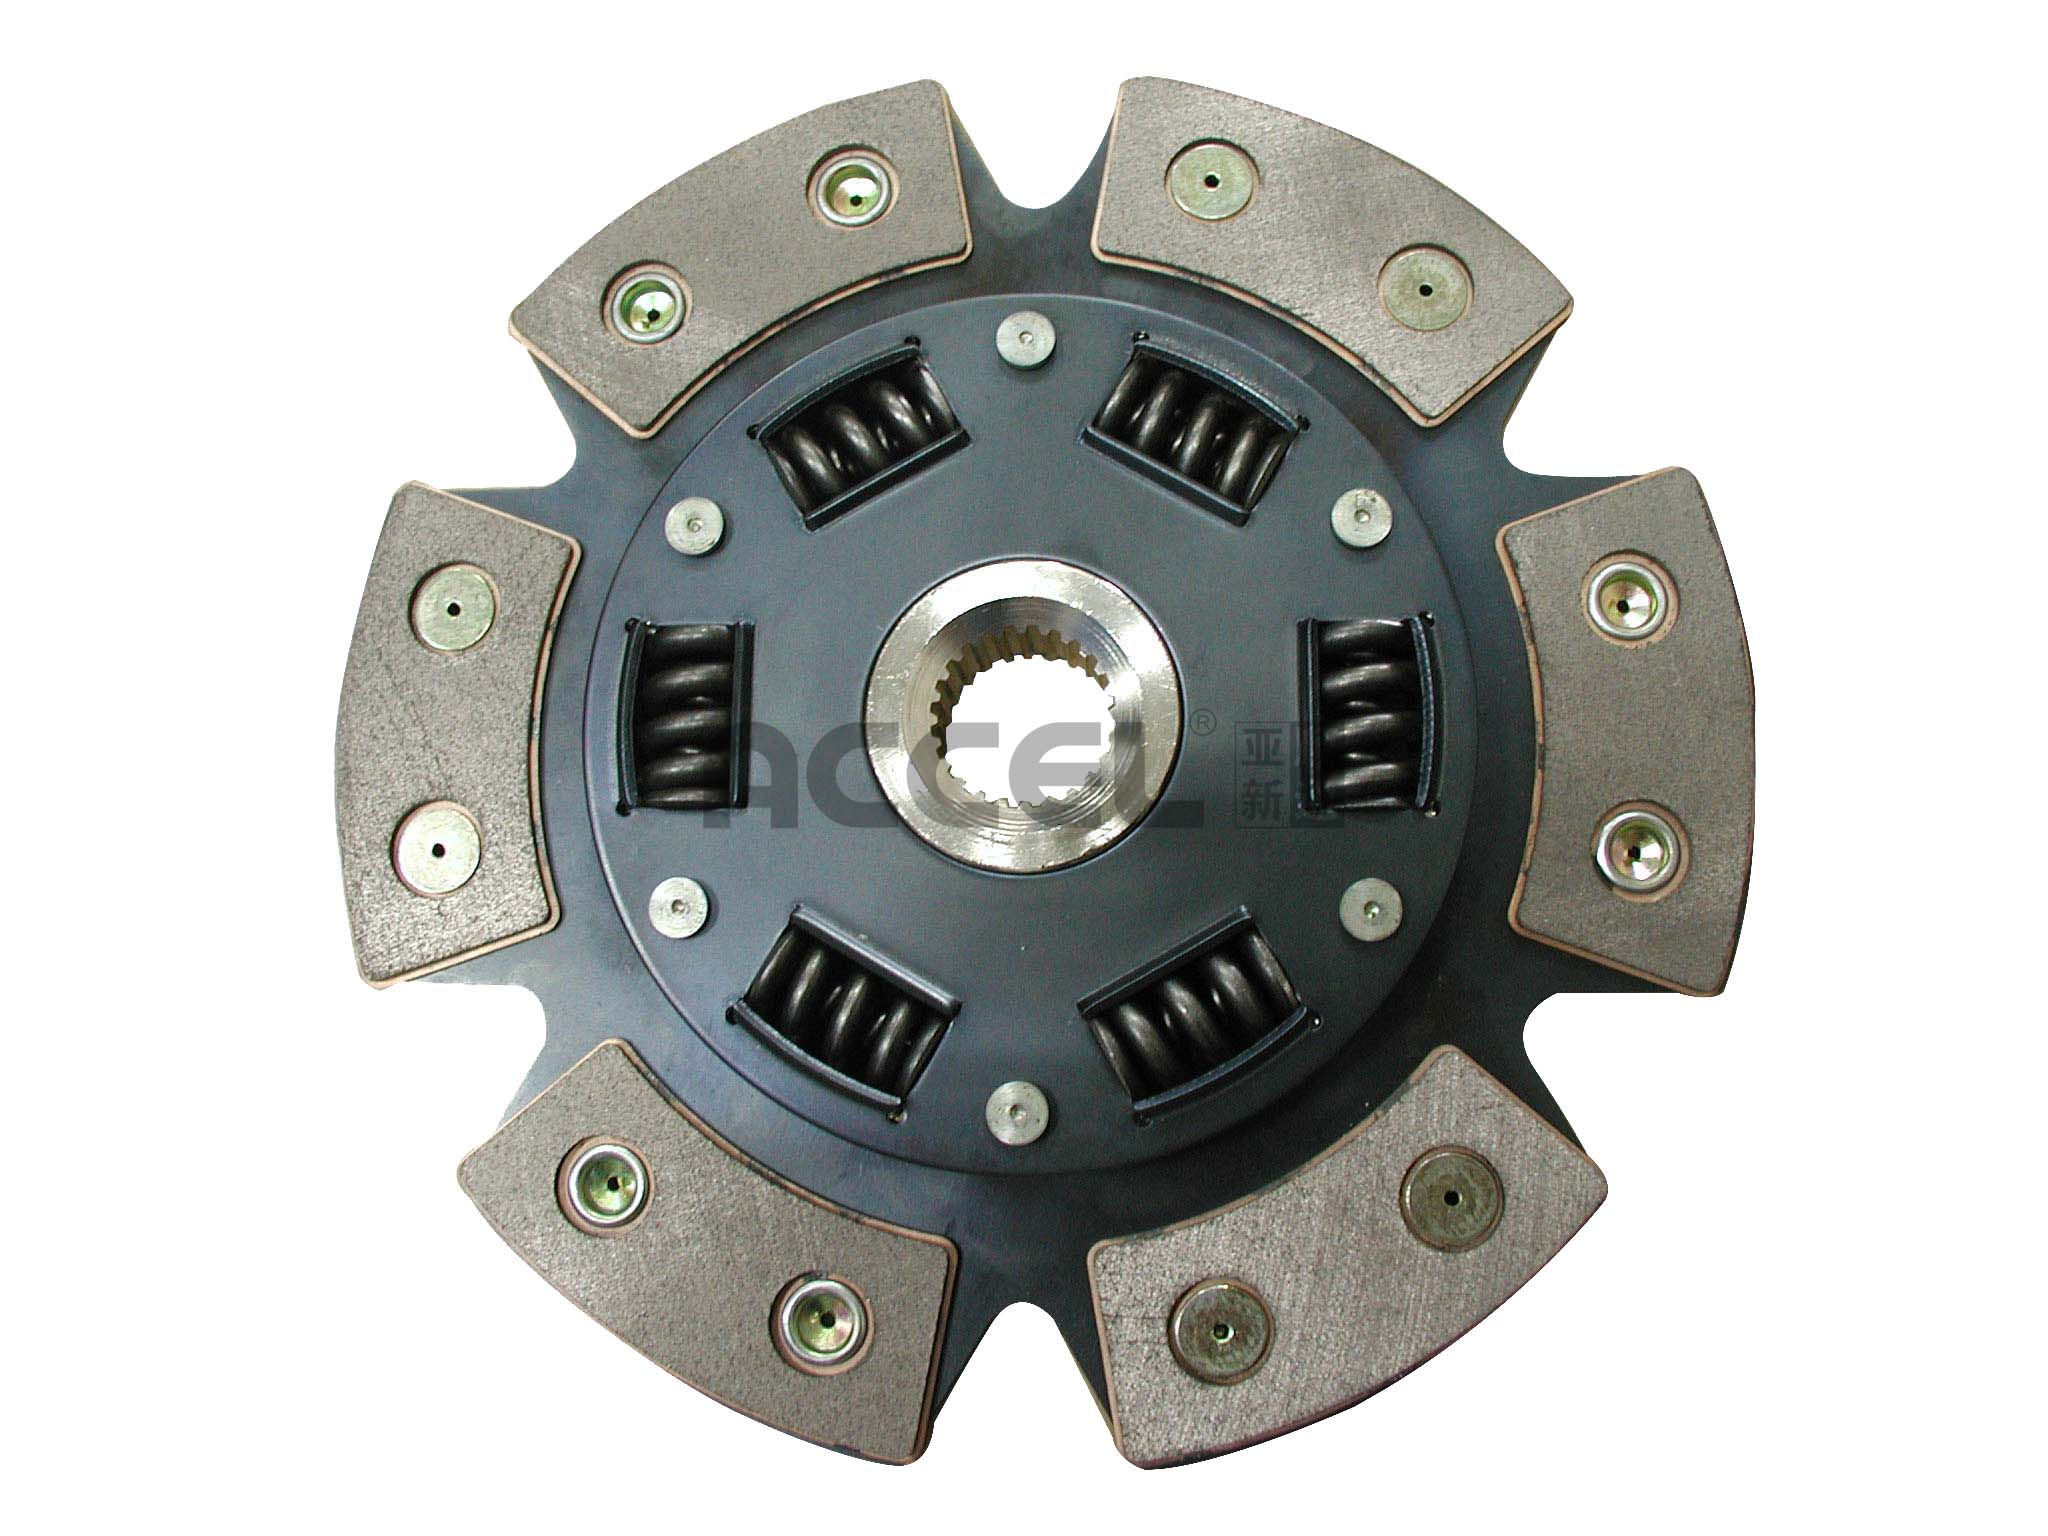 Clutch Disc/OE:6P/212*24*26/ARC-012T/RACING CAR/CL1369